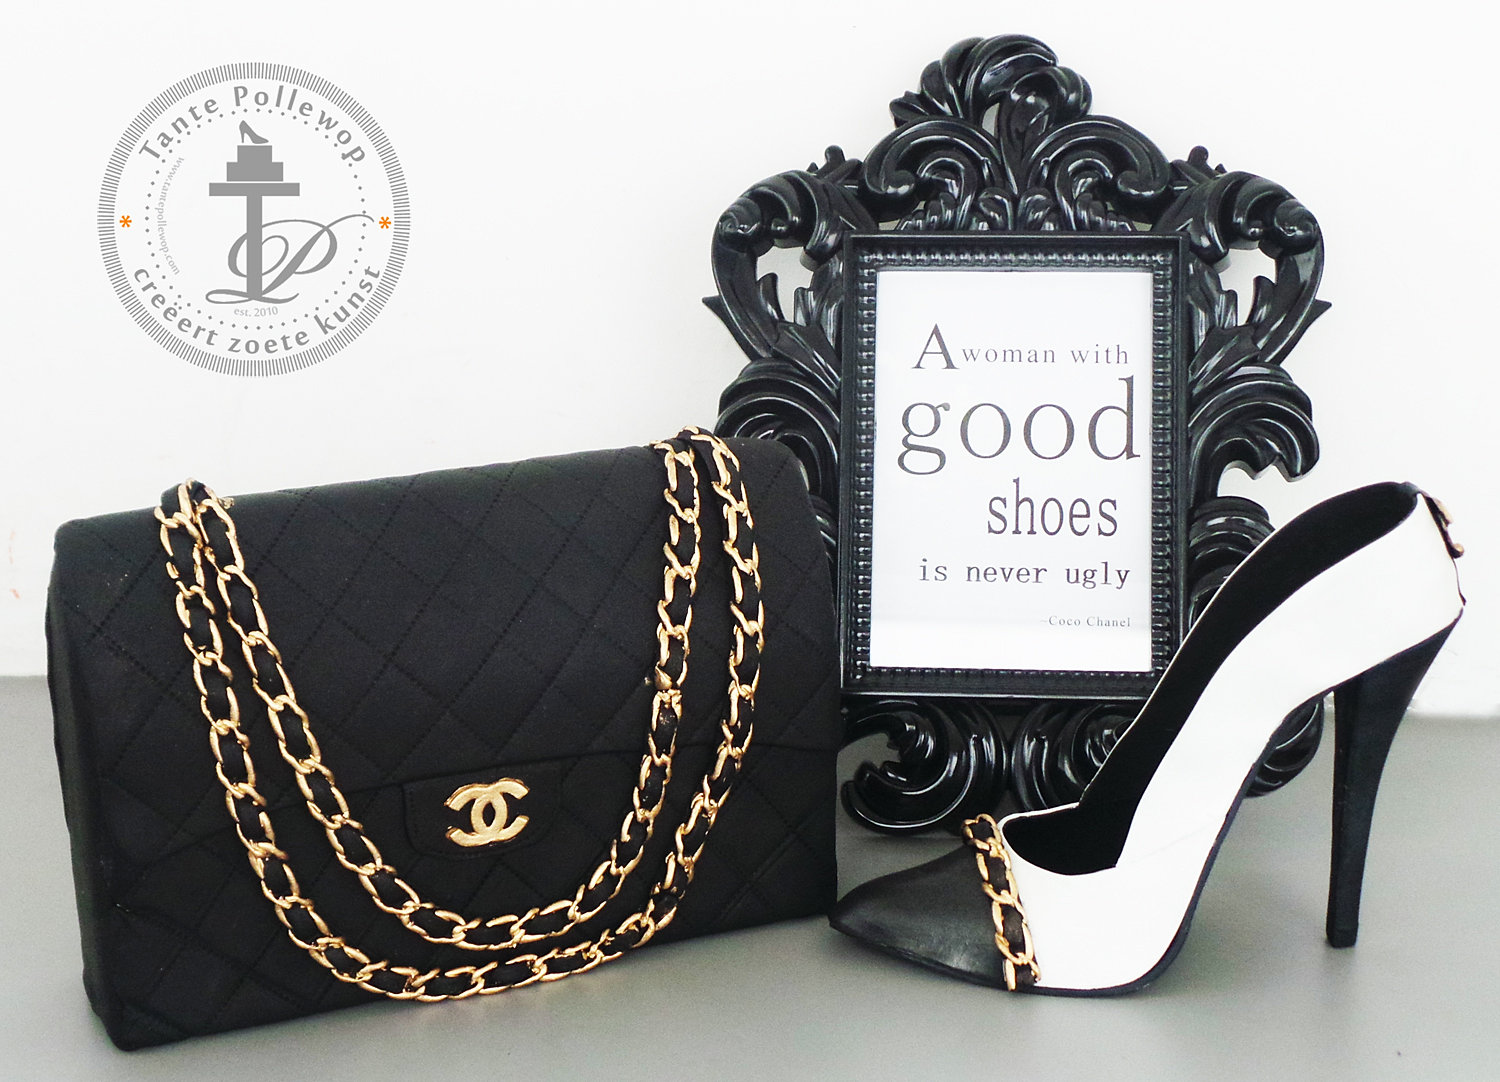 Tante Pollewop Cake Design Chanel Purse And Shoe